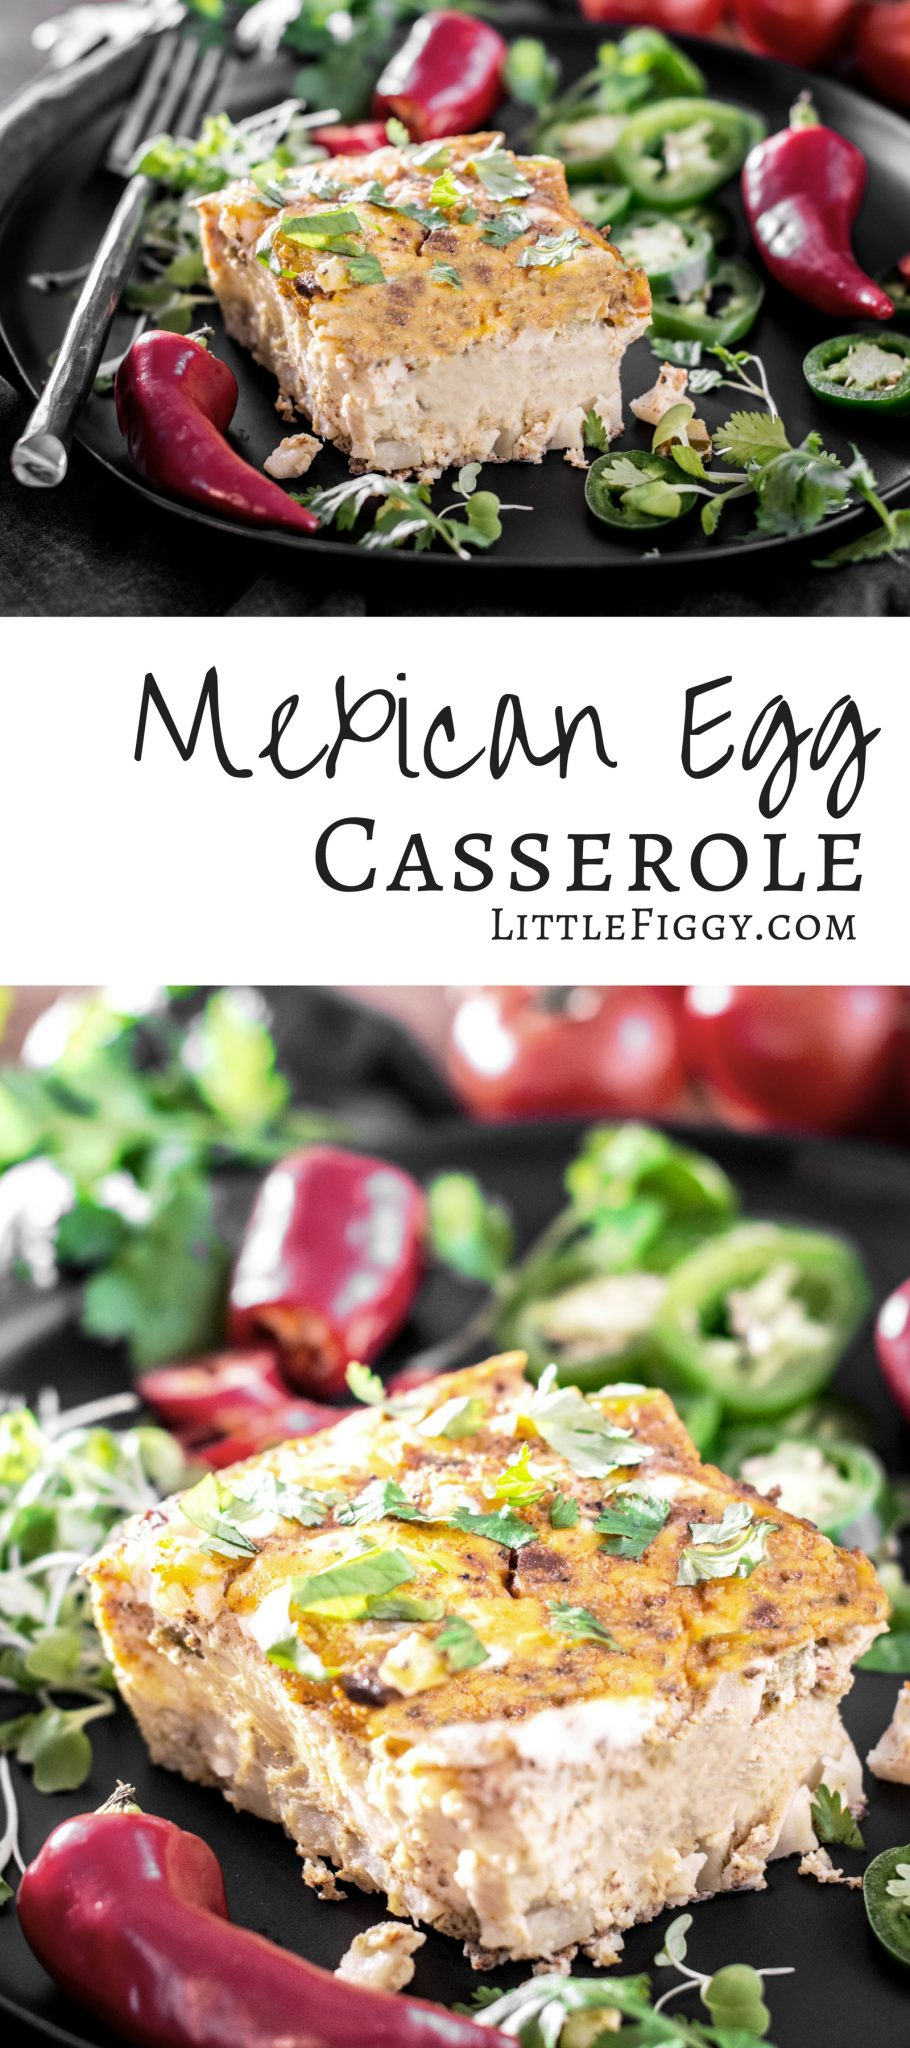 Try this slow cooker recipe for Mexican Egg Casserole made with my go to seasoning mix from @McCormickSpice! It really is so easy to enjoy a weekend brunch with family. #GoodMorningBreakfast #ad